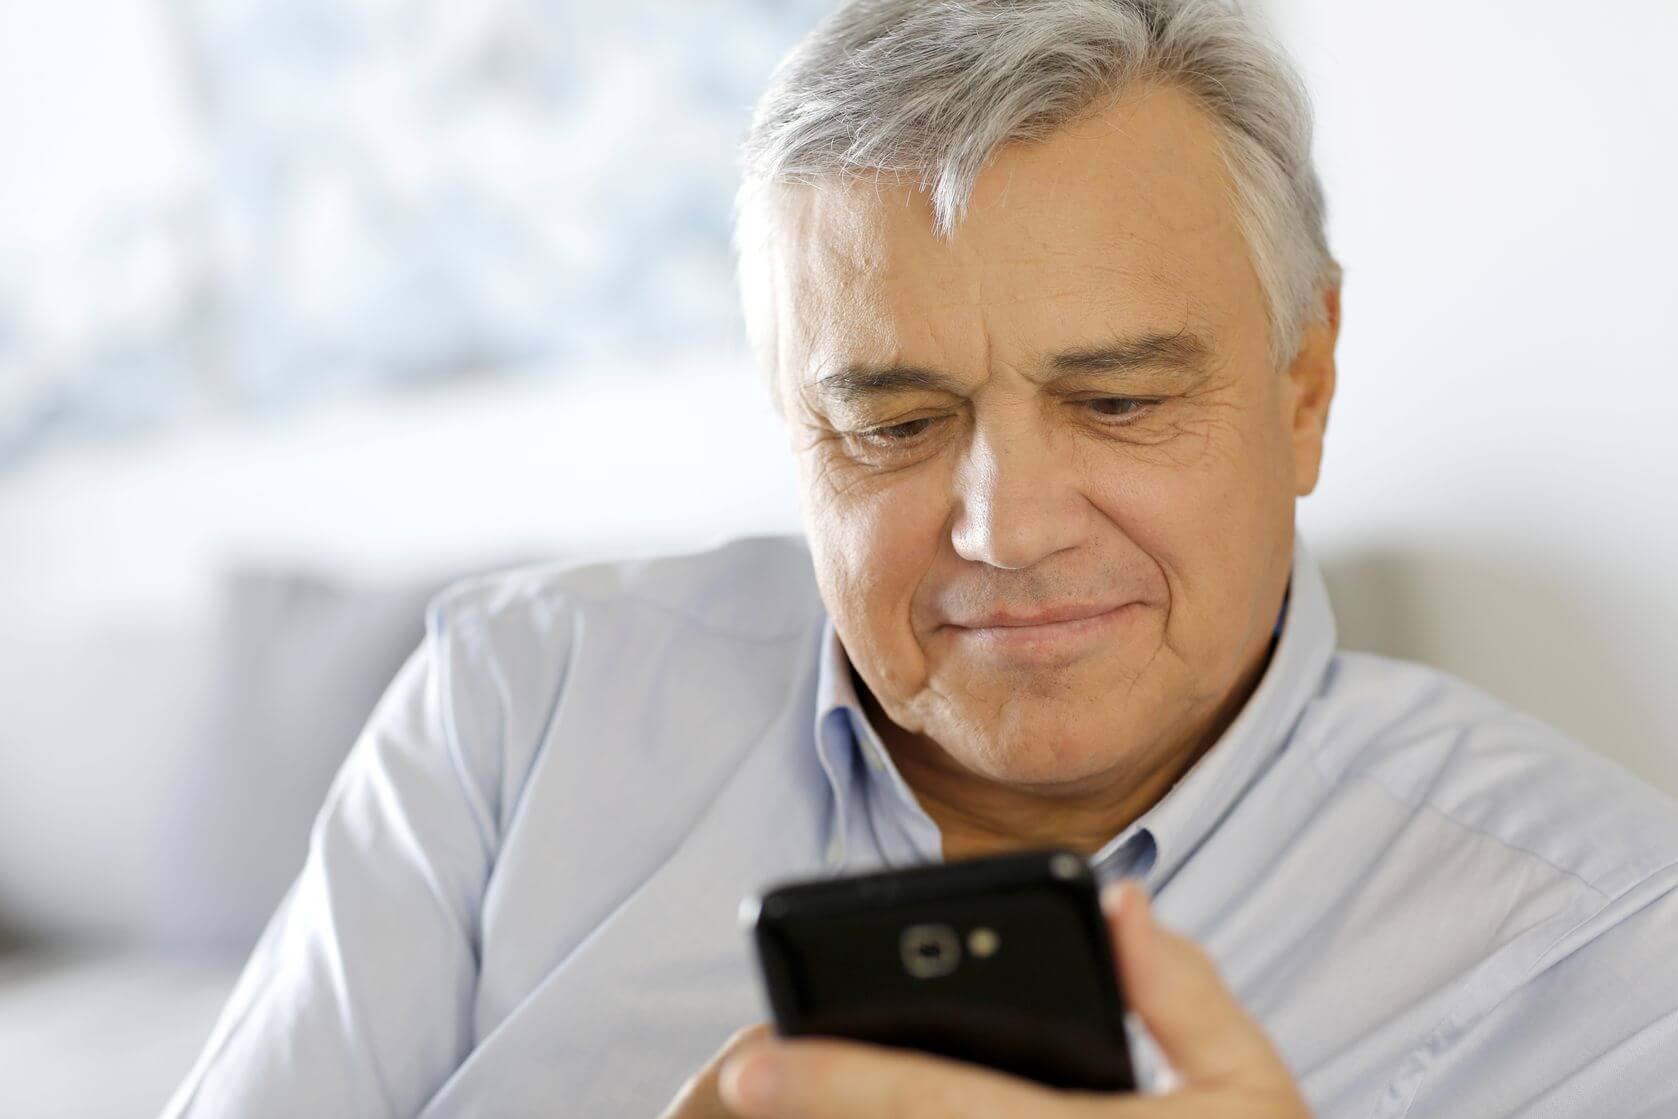 Man reads email on his smartphone